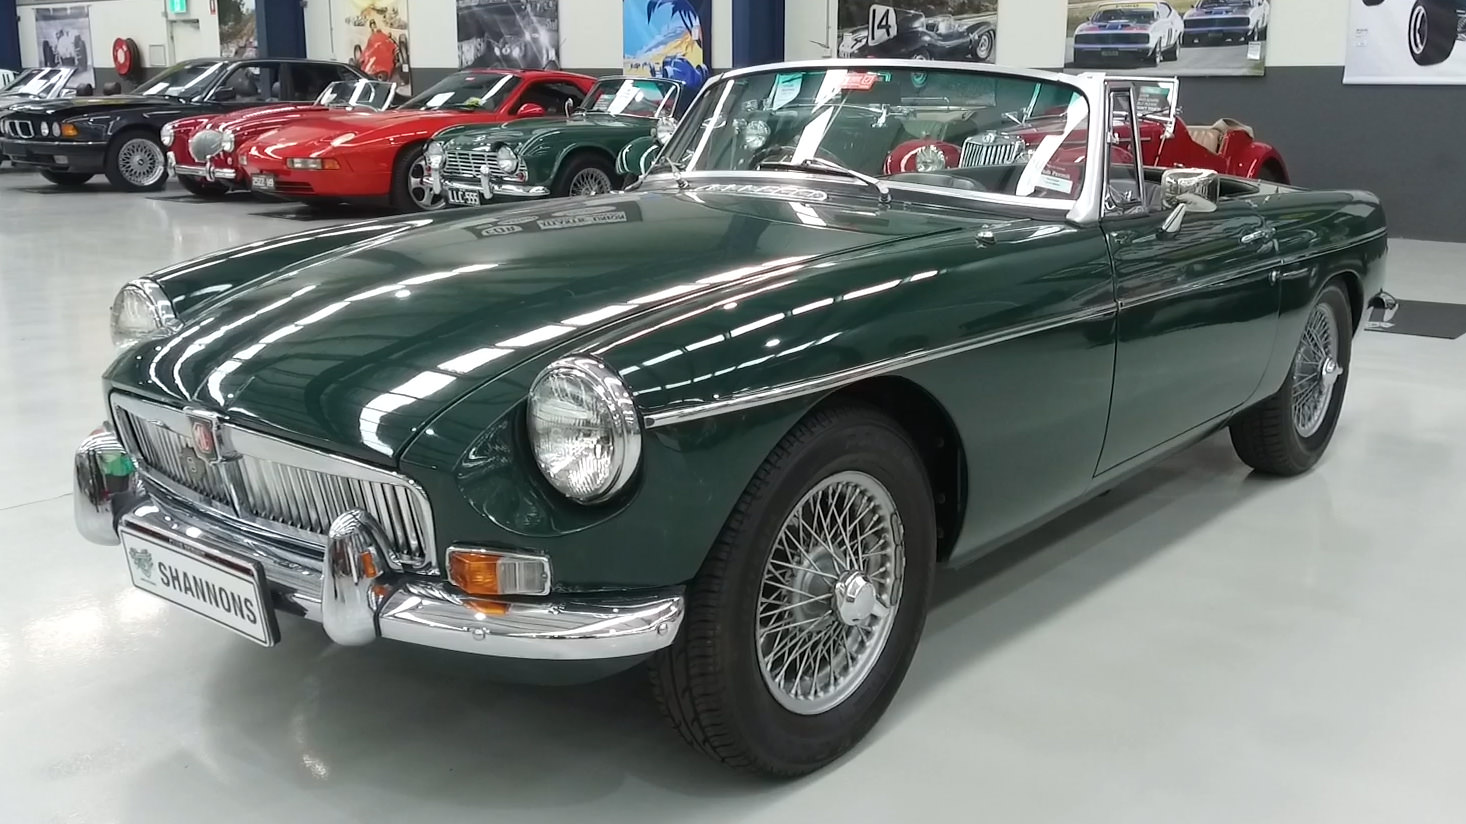 1969 MG B MKII Roadster - 2021 Shannons Autumn Timed Online Auction